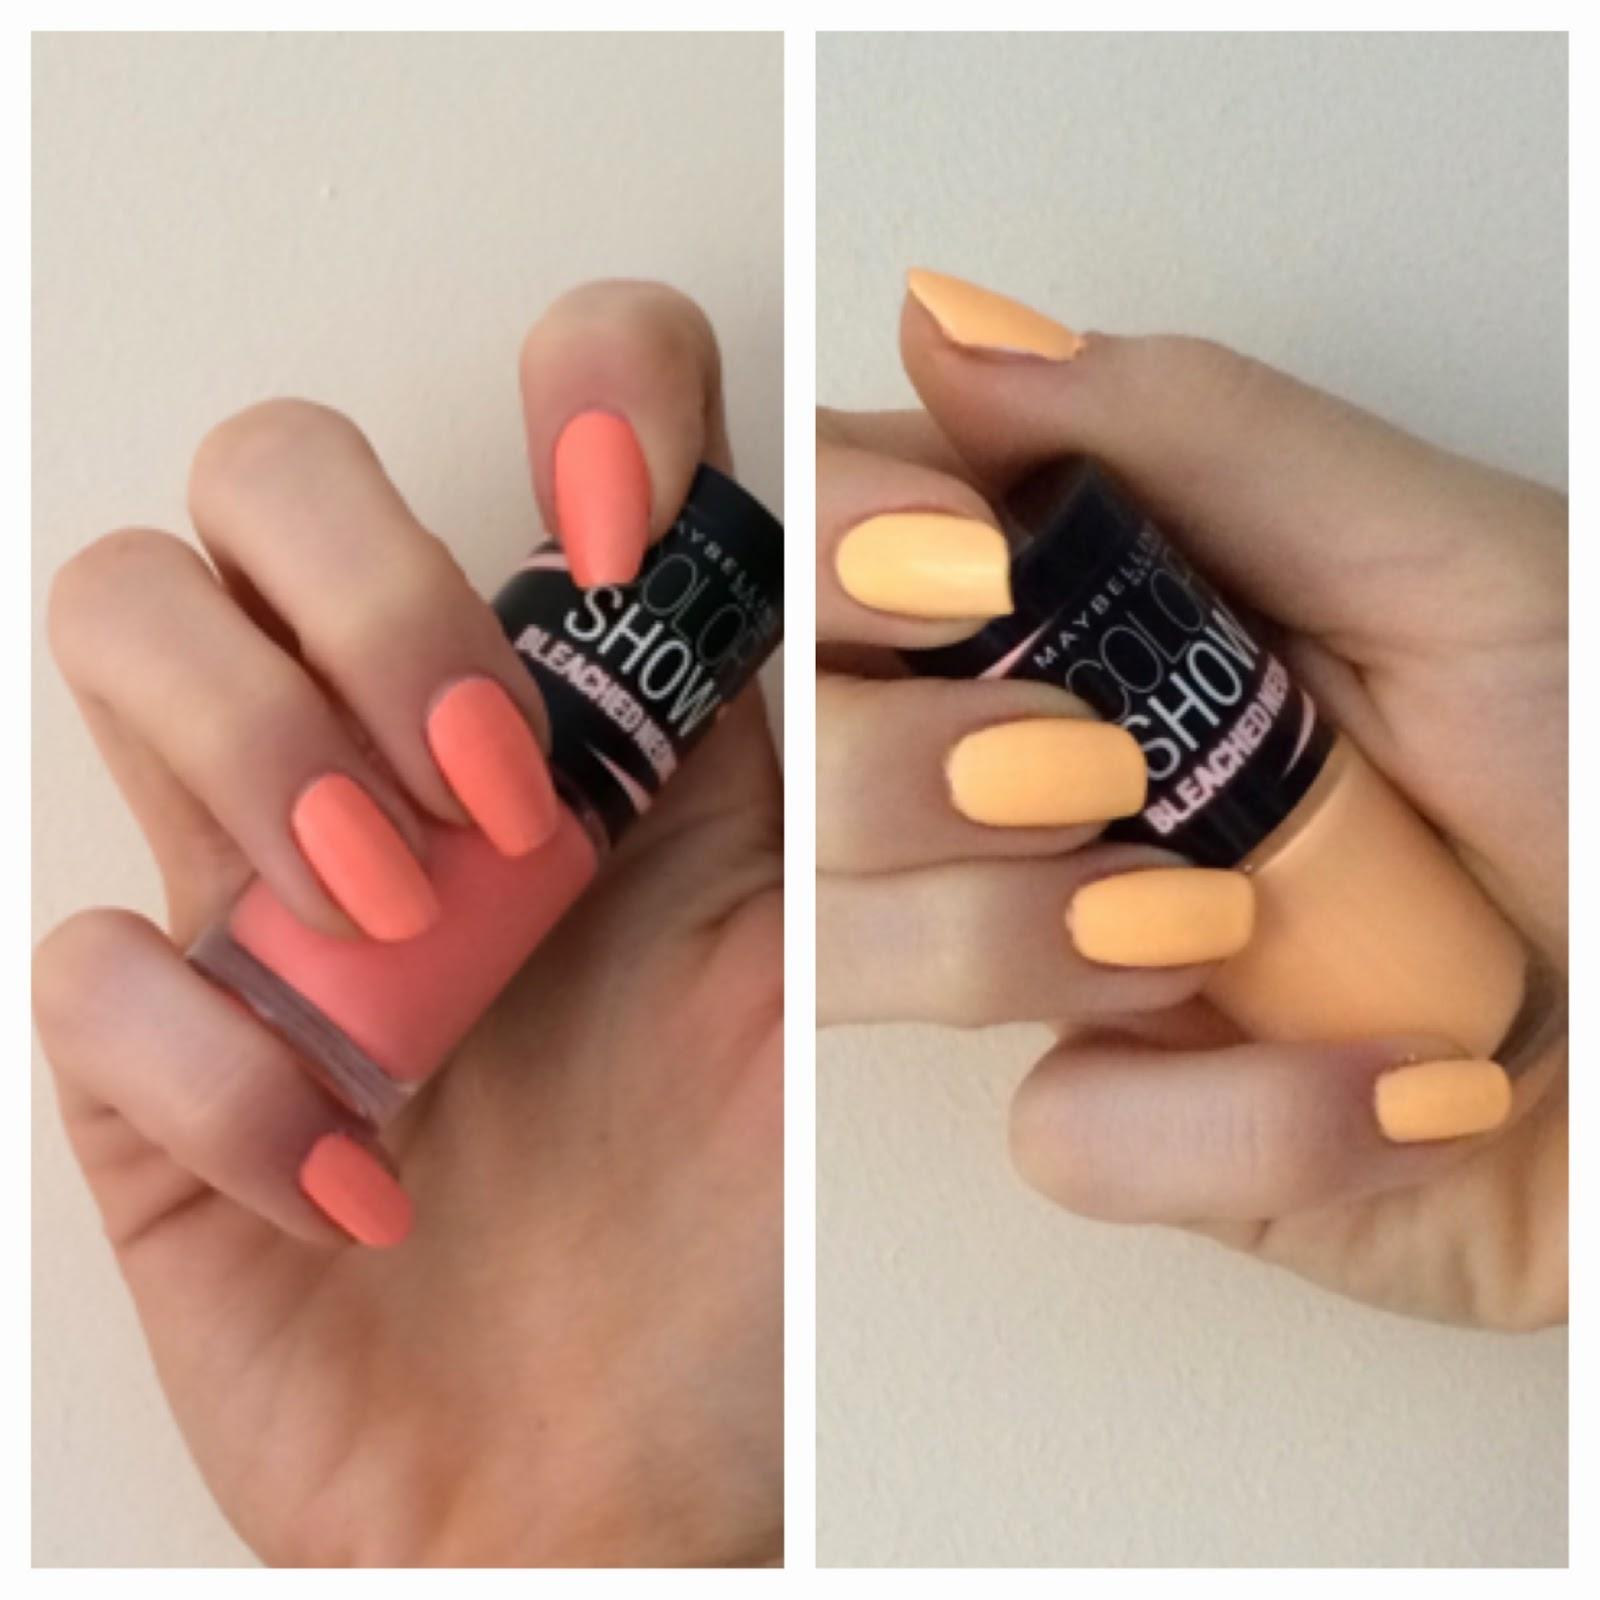 maybelline-bleached-neons-color-show-nail-polish-review